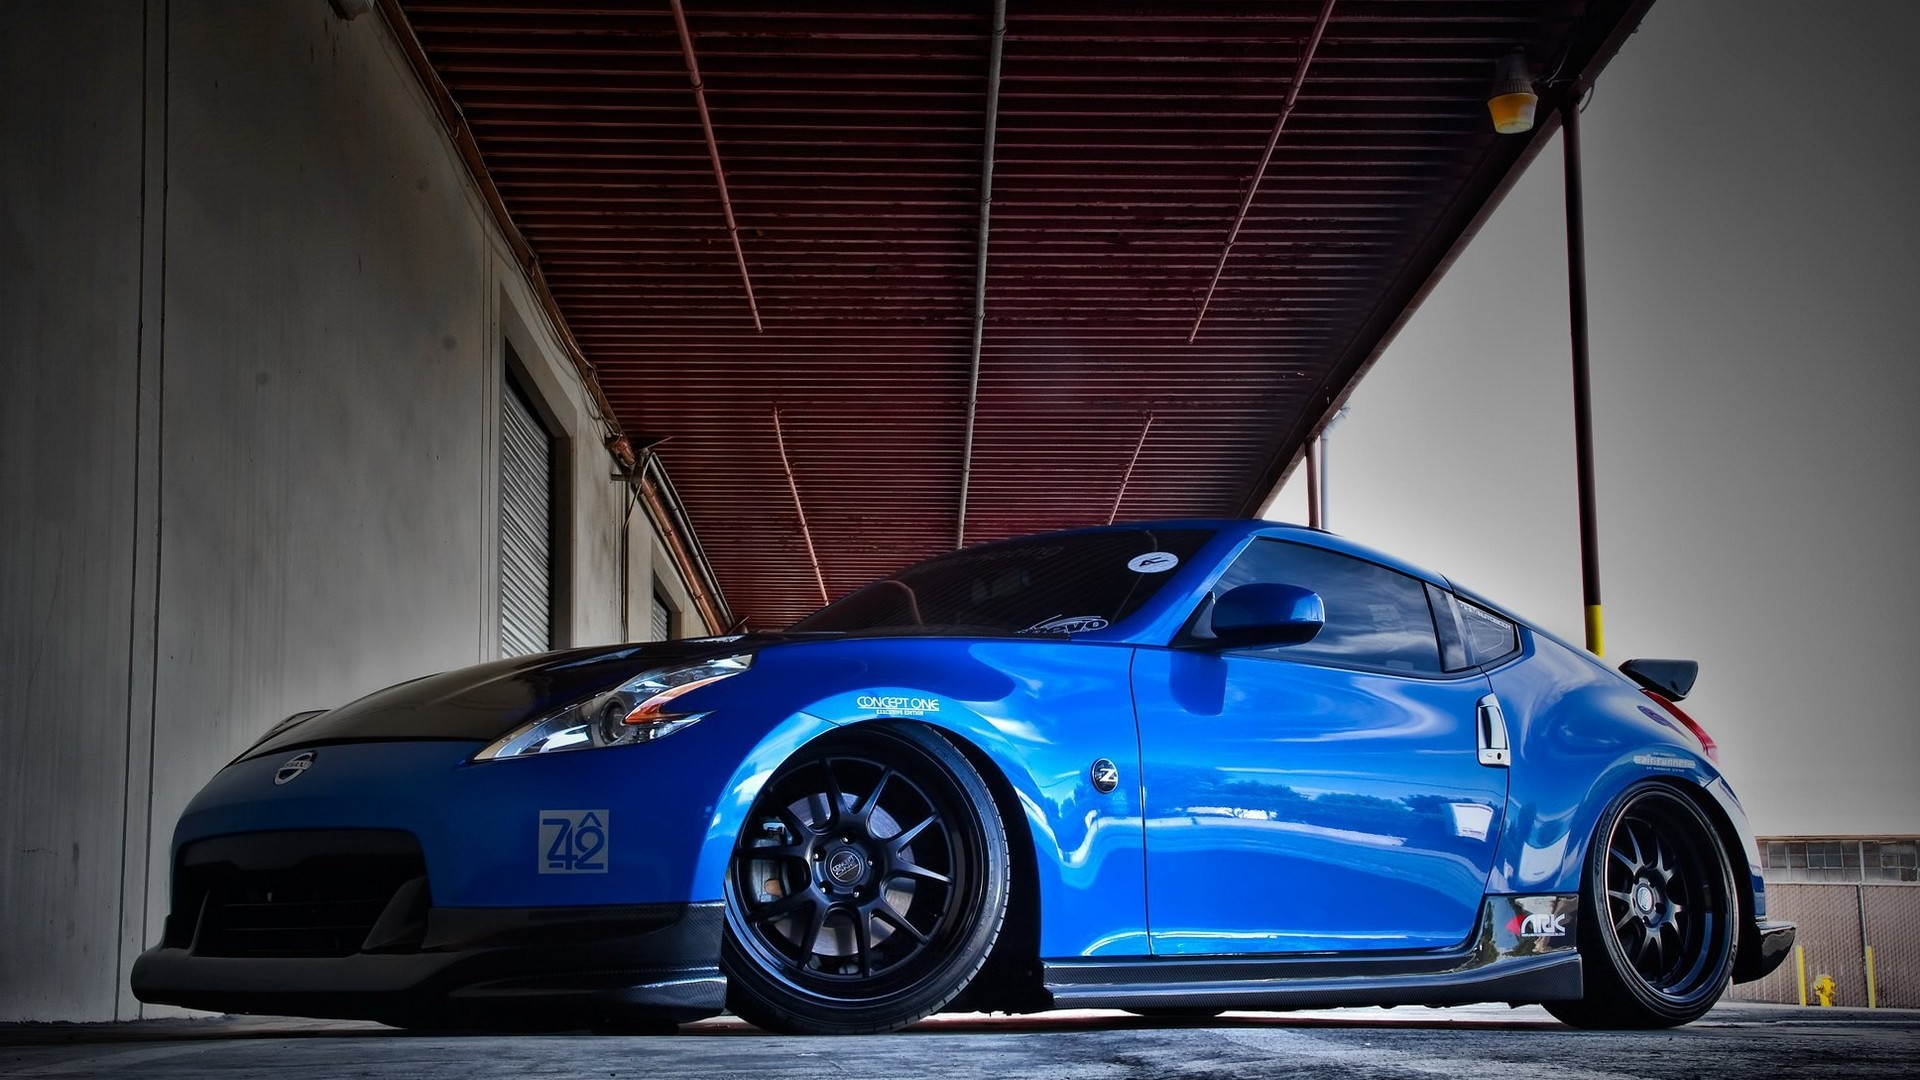 Blue Custom Nissan 370z Ground Level Photo Wide Hd Nissan 370z Coupe Tuning 1920x1080 Download Hd Wallpaper Wallpapertip